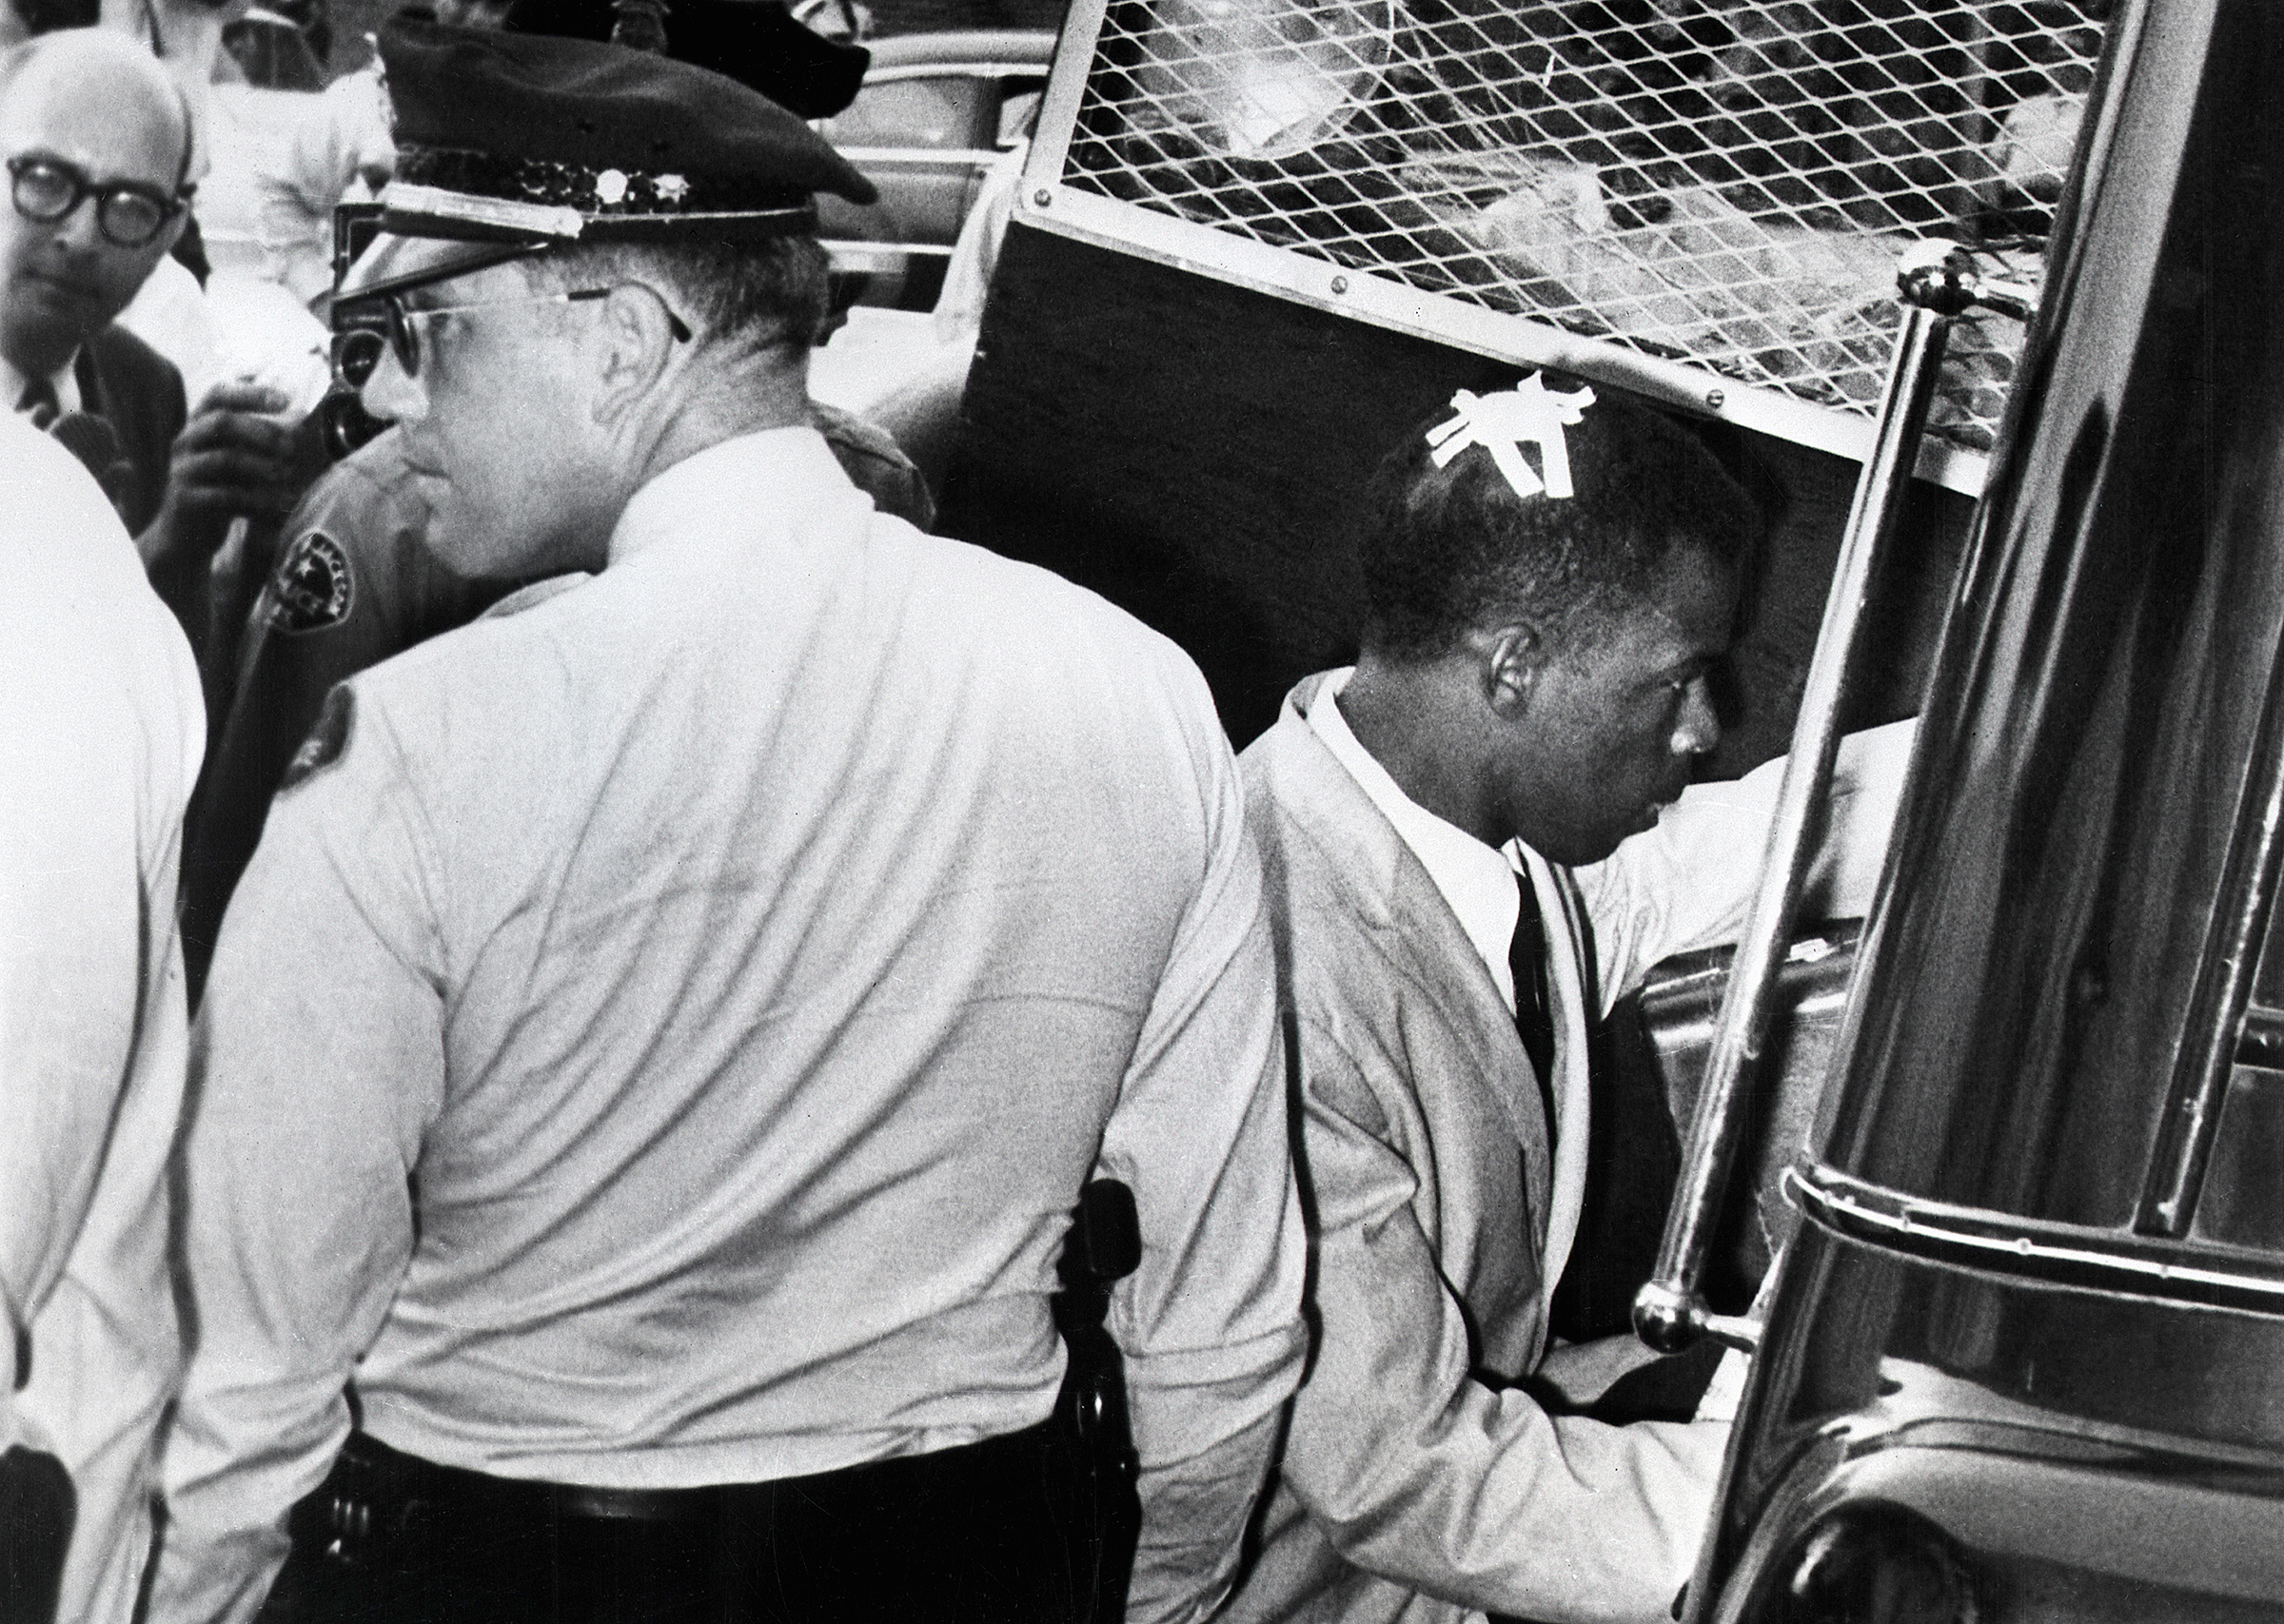 With an  X  made of tape still on his head, marking the spot where he was struck in Montgomery, Ala., John Lewis enters a police van after his arrest in Jackson, Miss., in May 1961.